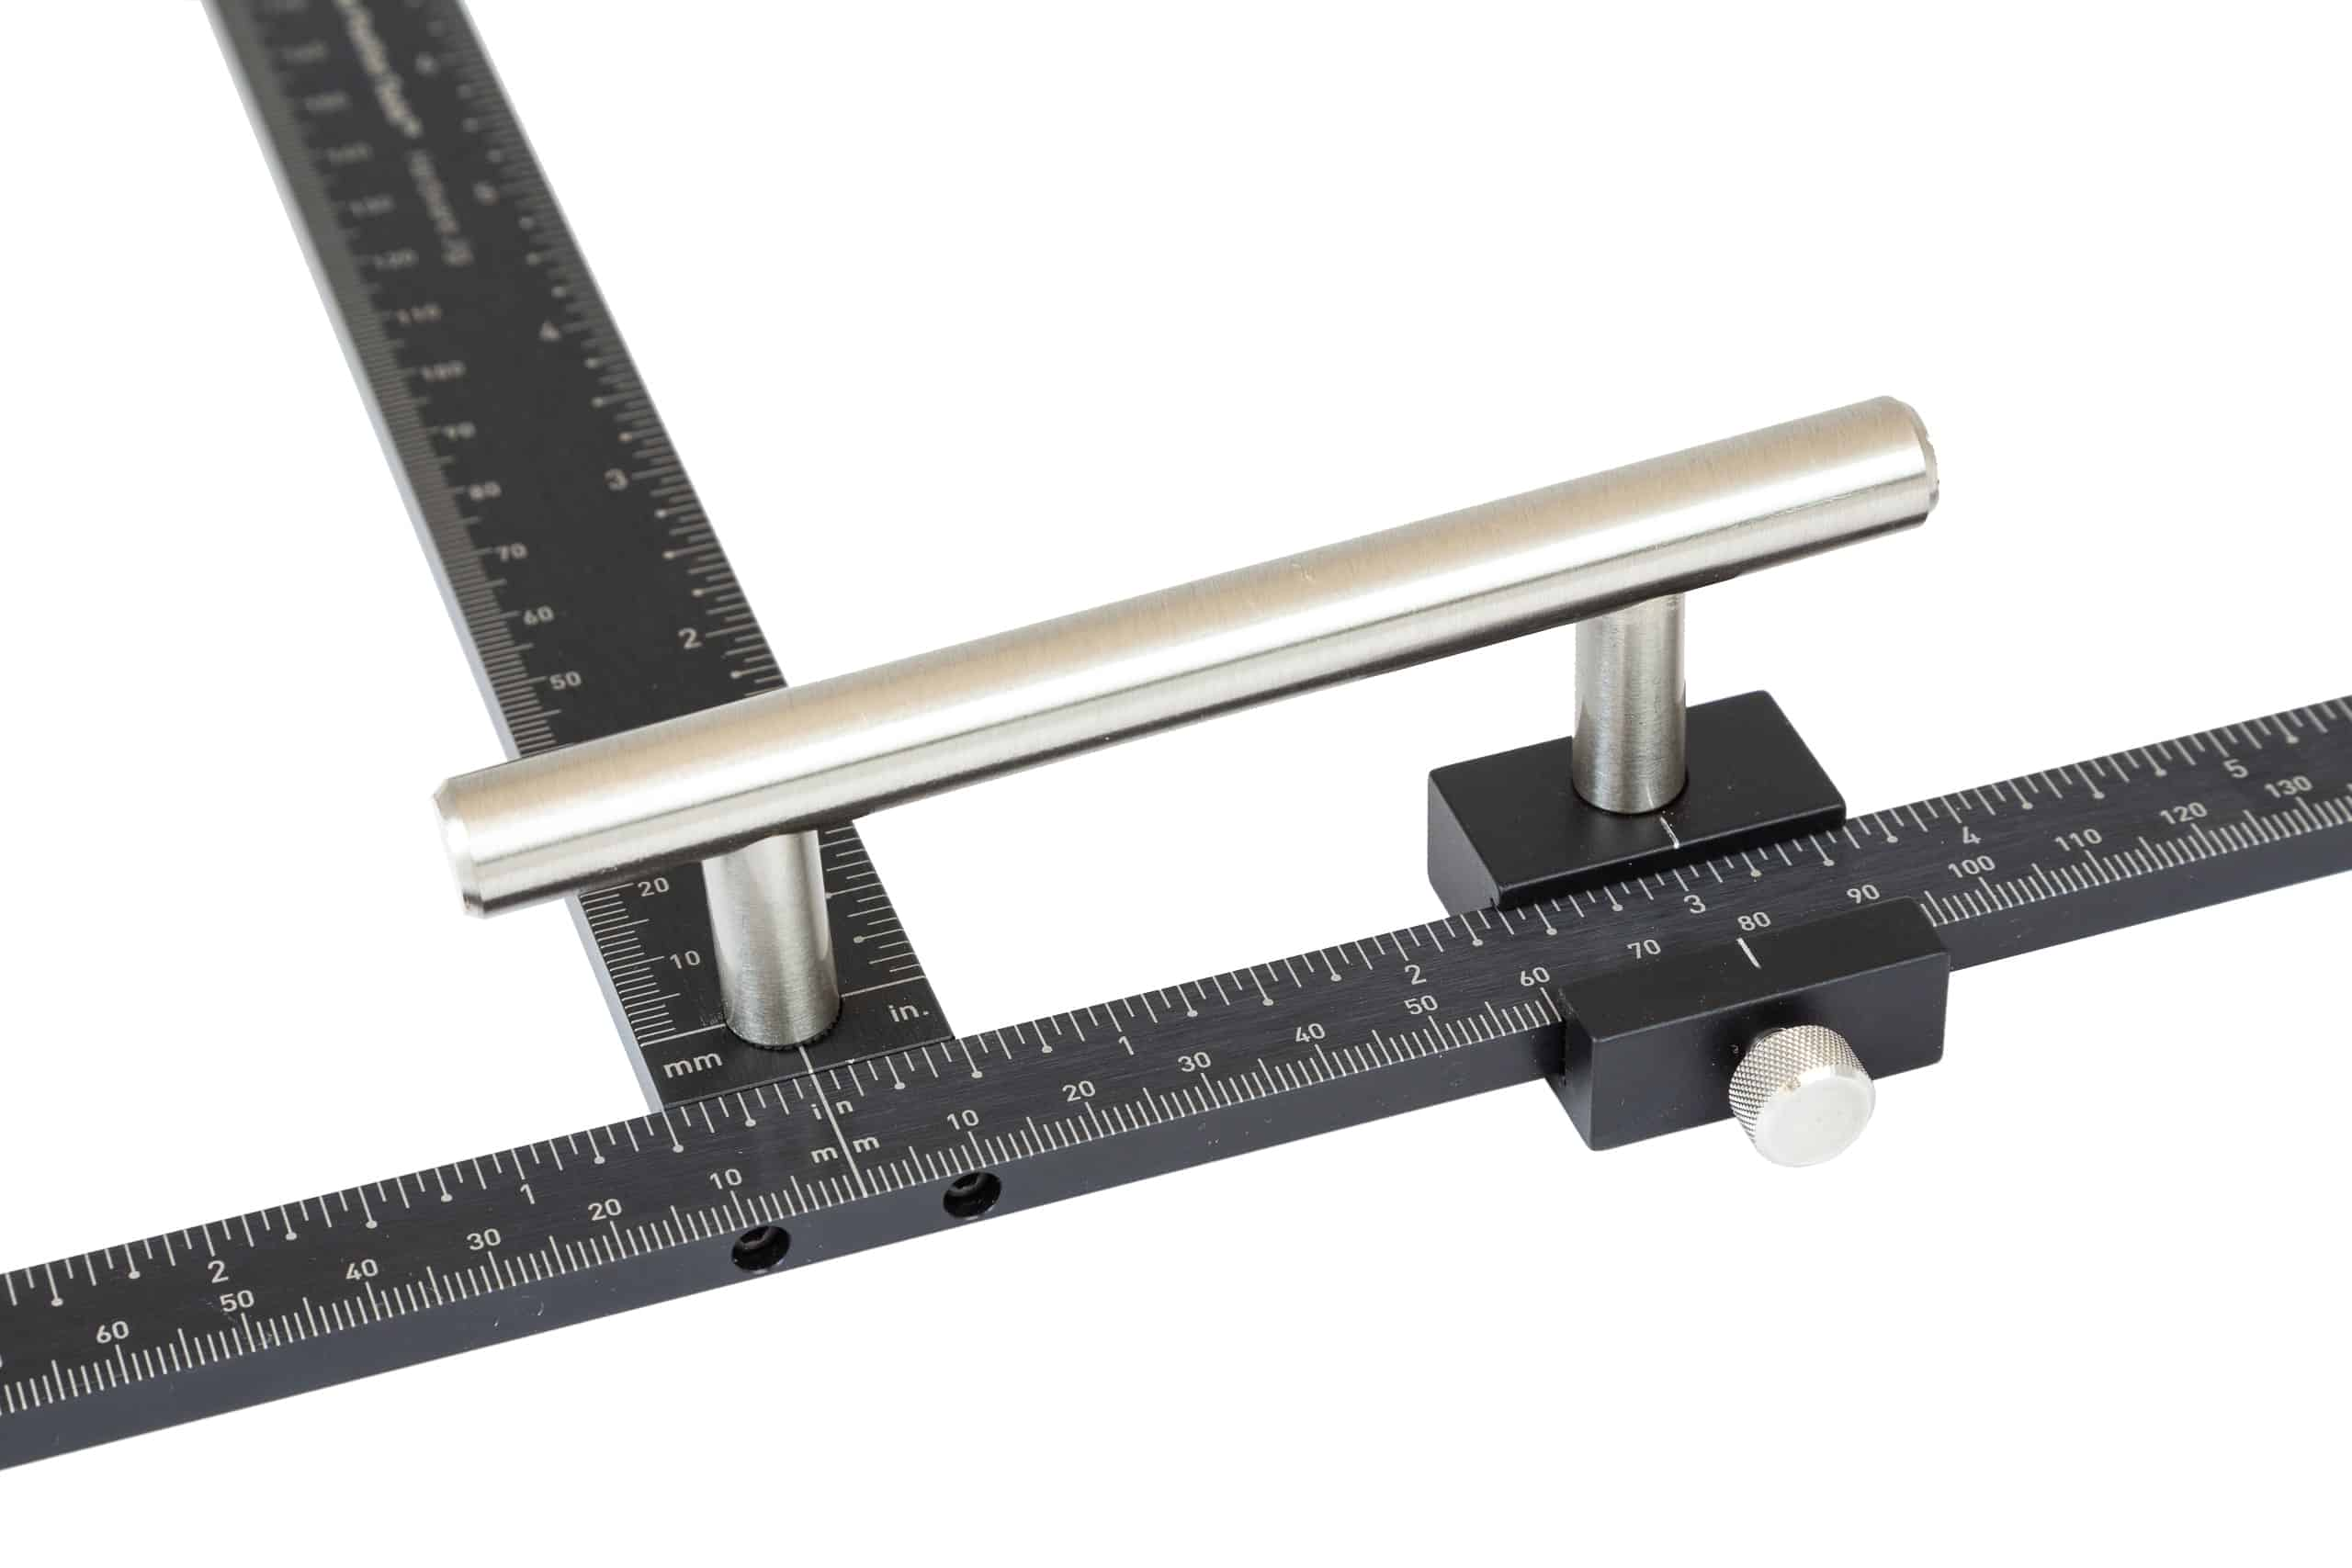 TP-1934 Cabinet Hardware Jig confirming cabinet handle spacing